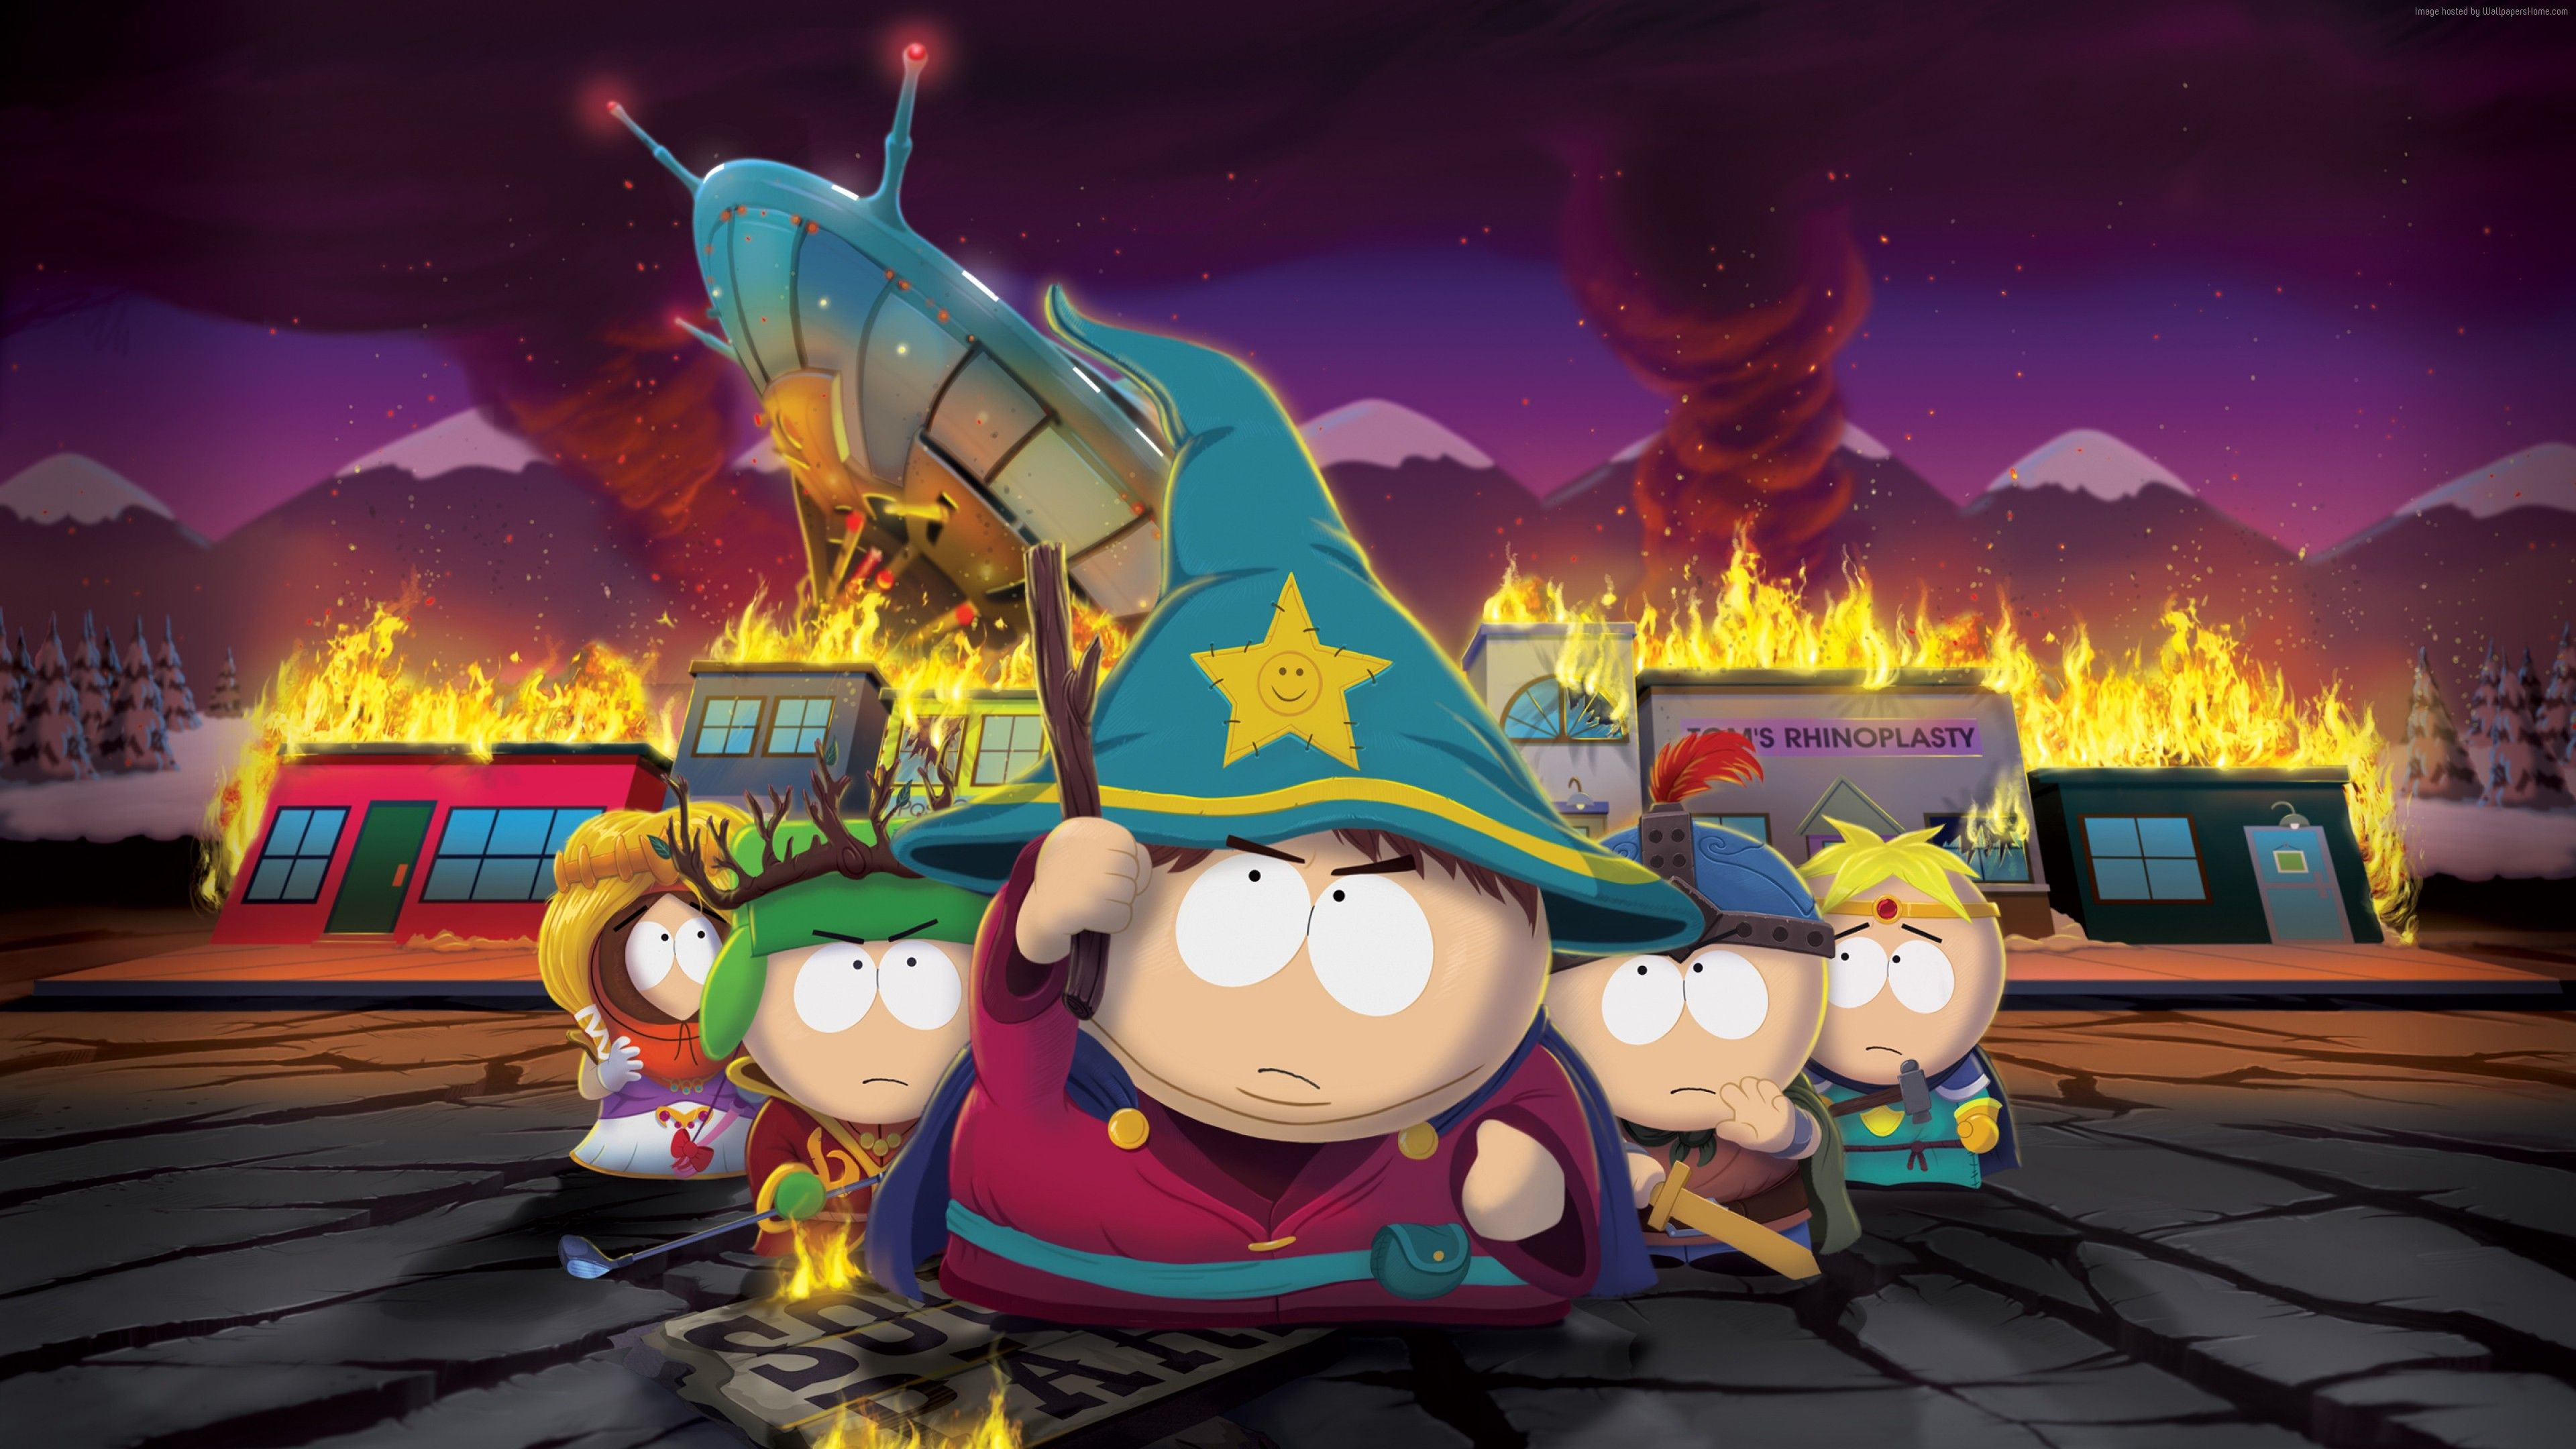 South Park 4k Hd Cartoons 4k Wallpapers Images Backgrounds Photos And Pictures